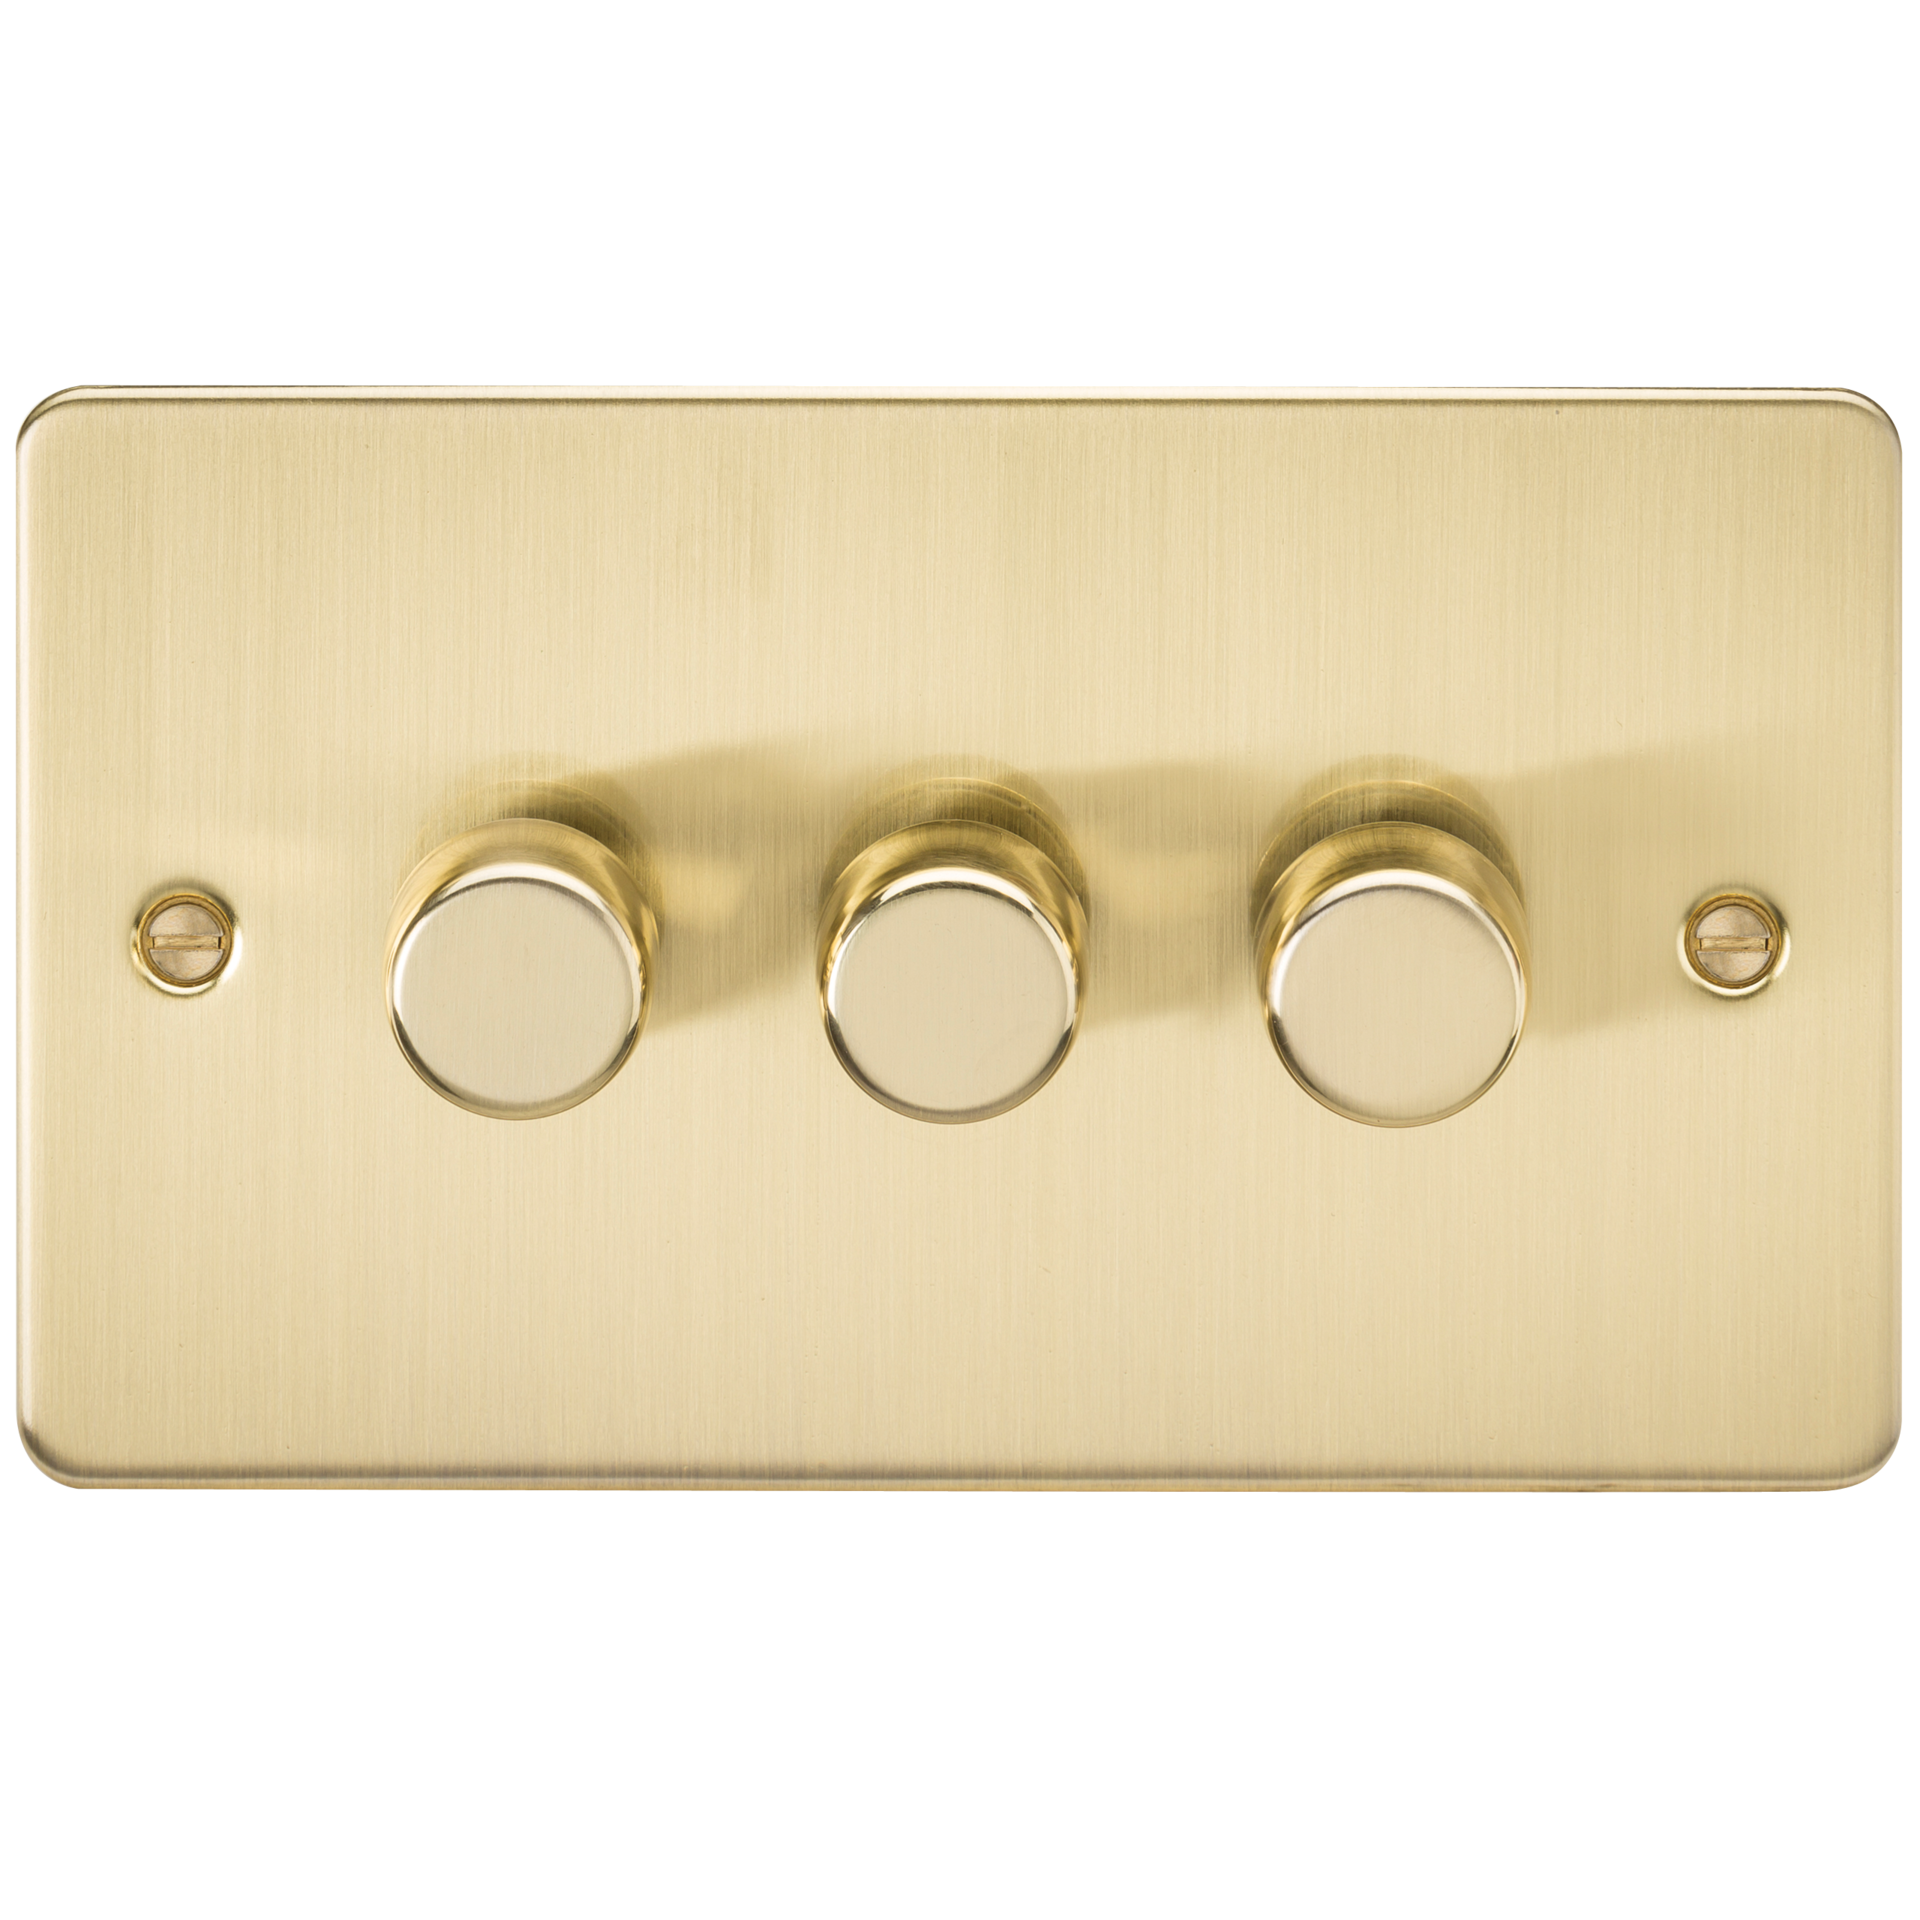 FLAT PLATE 3G 2 WAY 40-400W DIMMER - BRUSHED BRASS